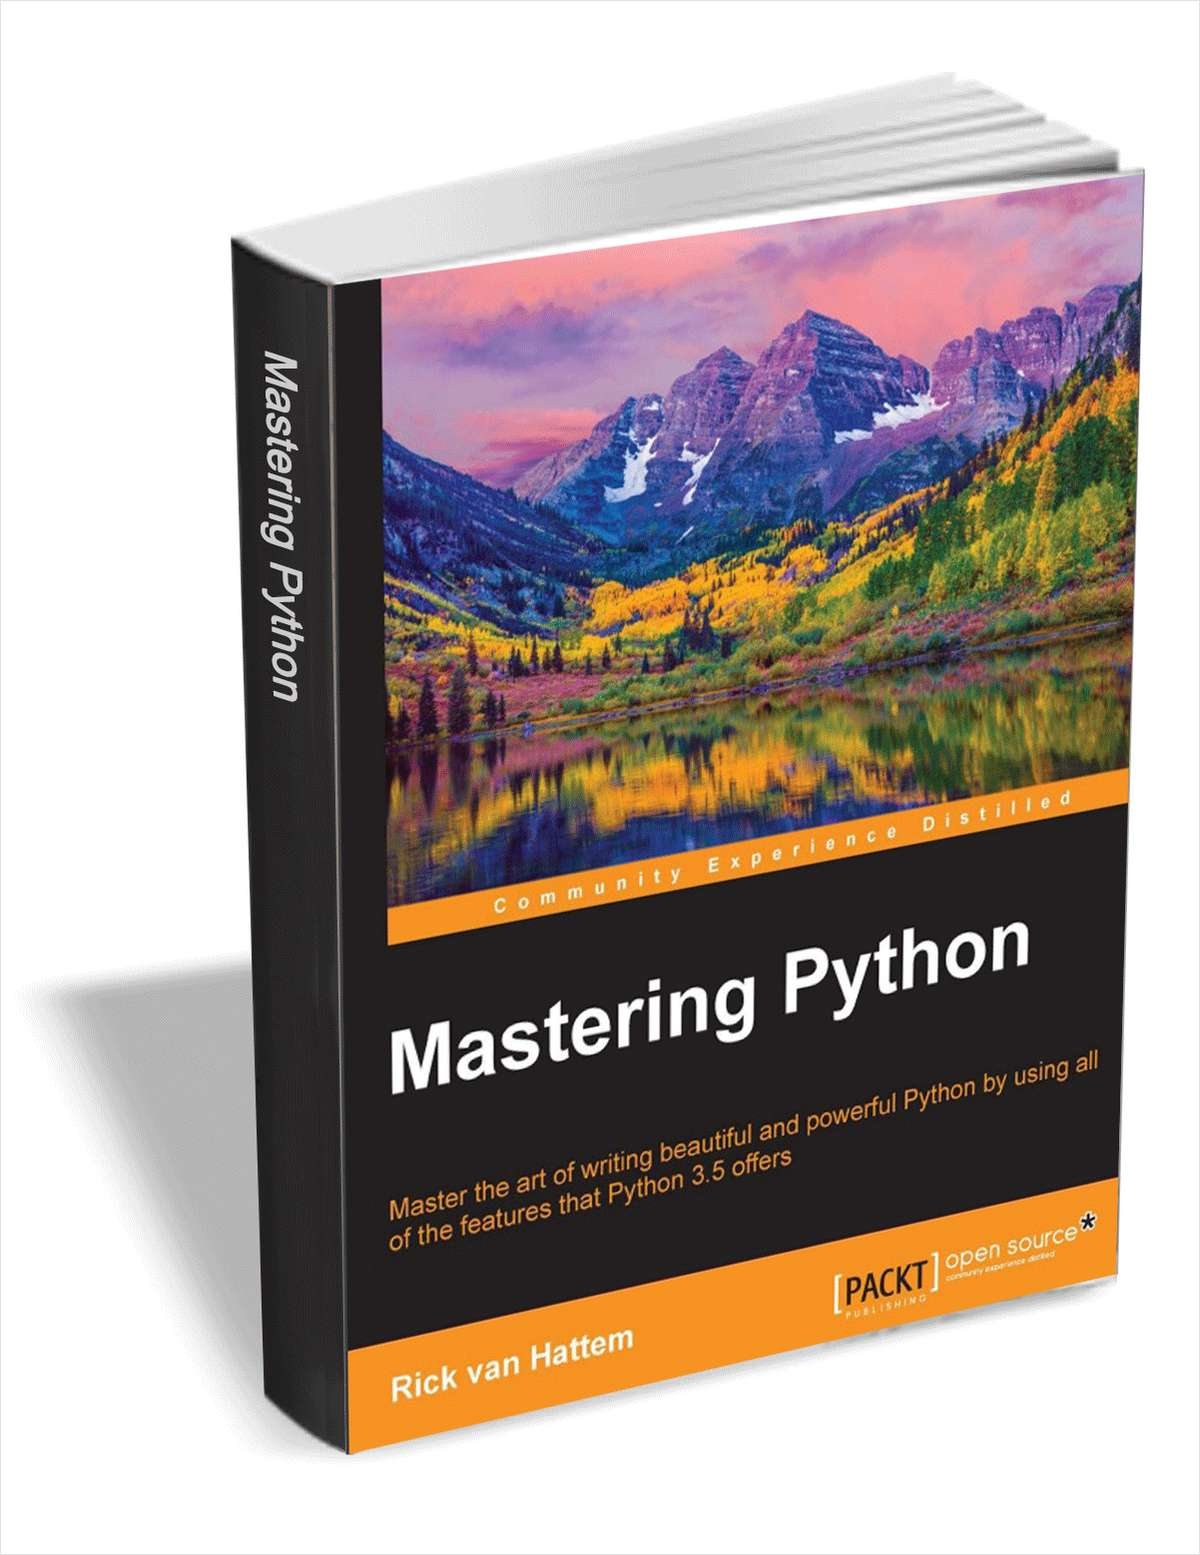 Mastering Python ($10 Value) FREE For a Limited Time